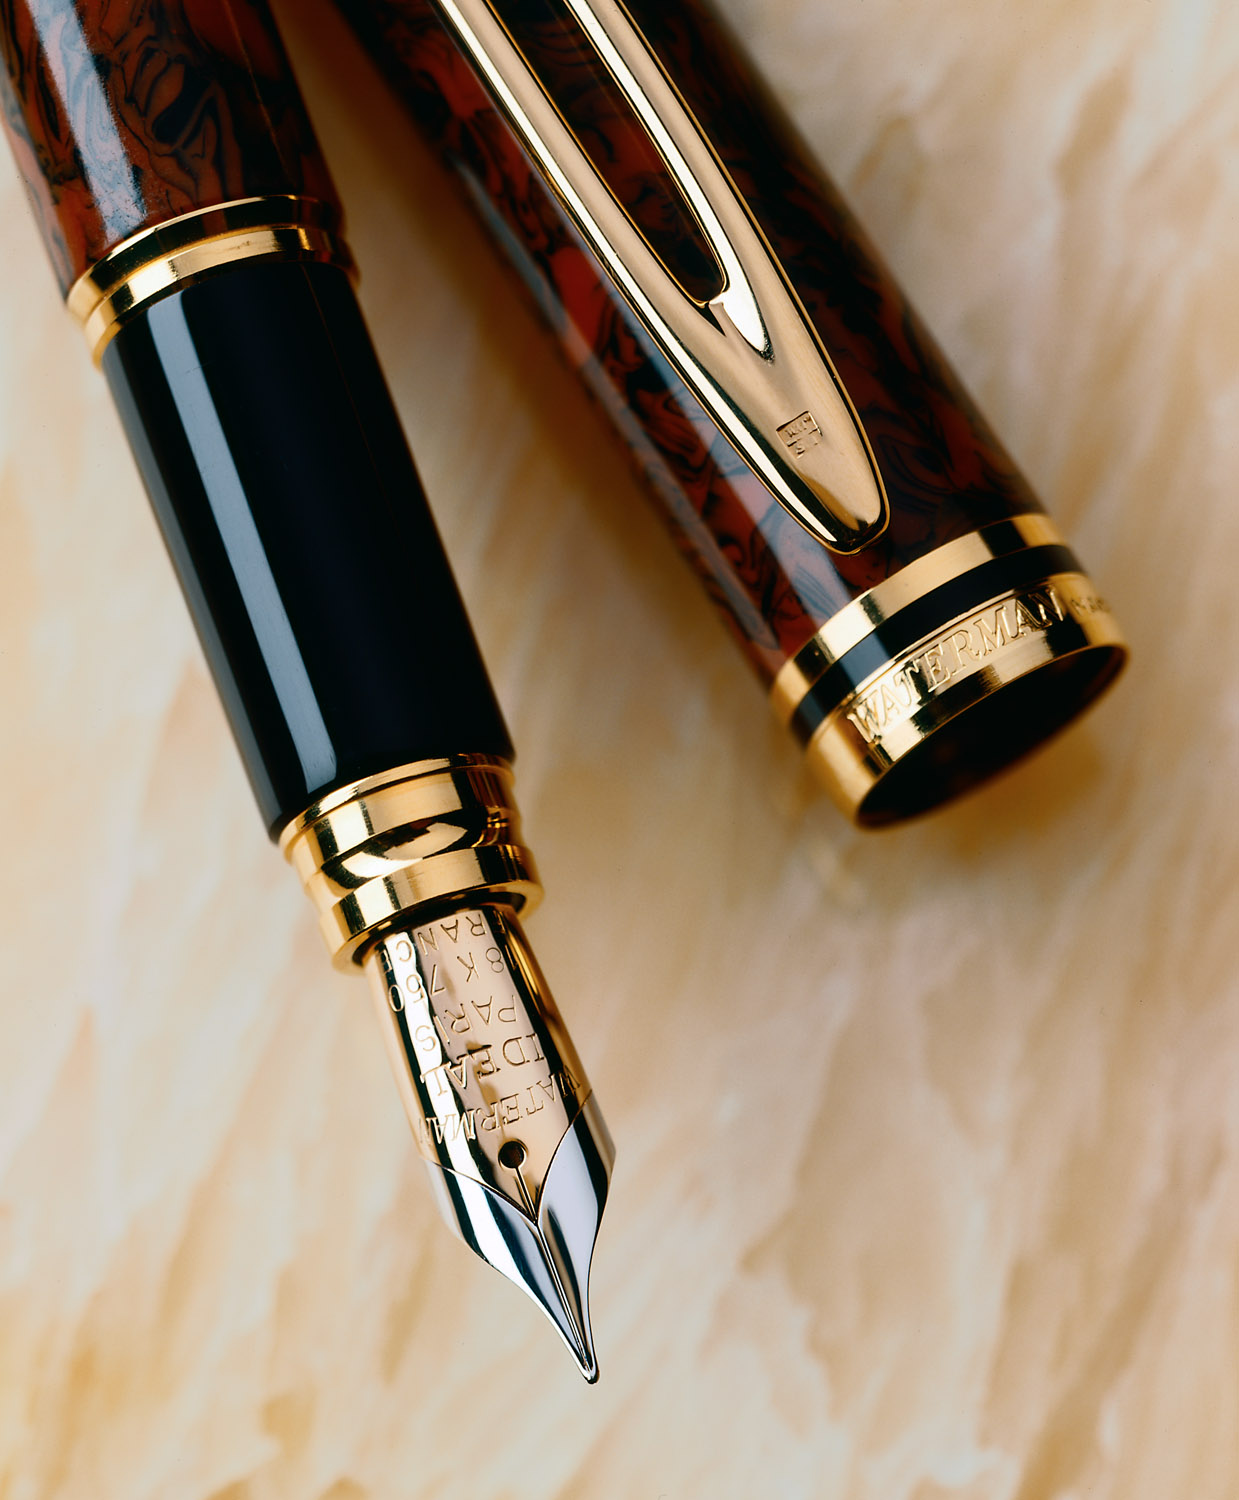 product photo of fountain pen